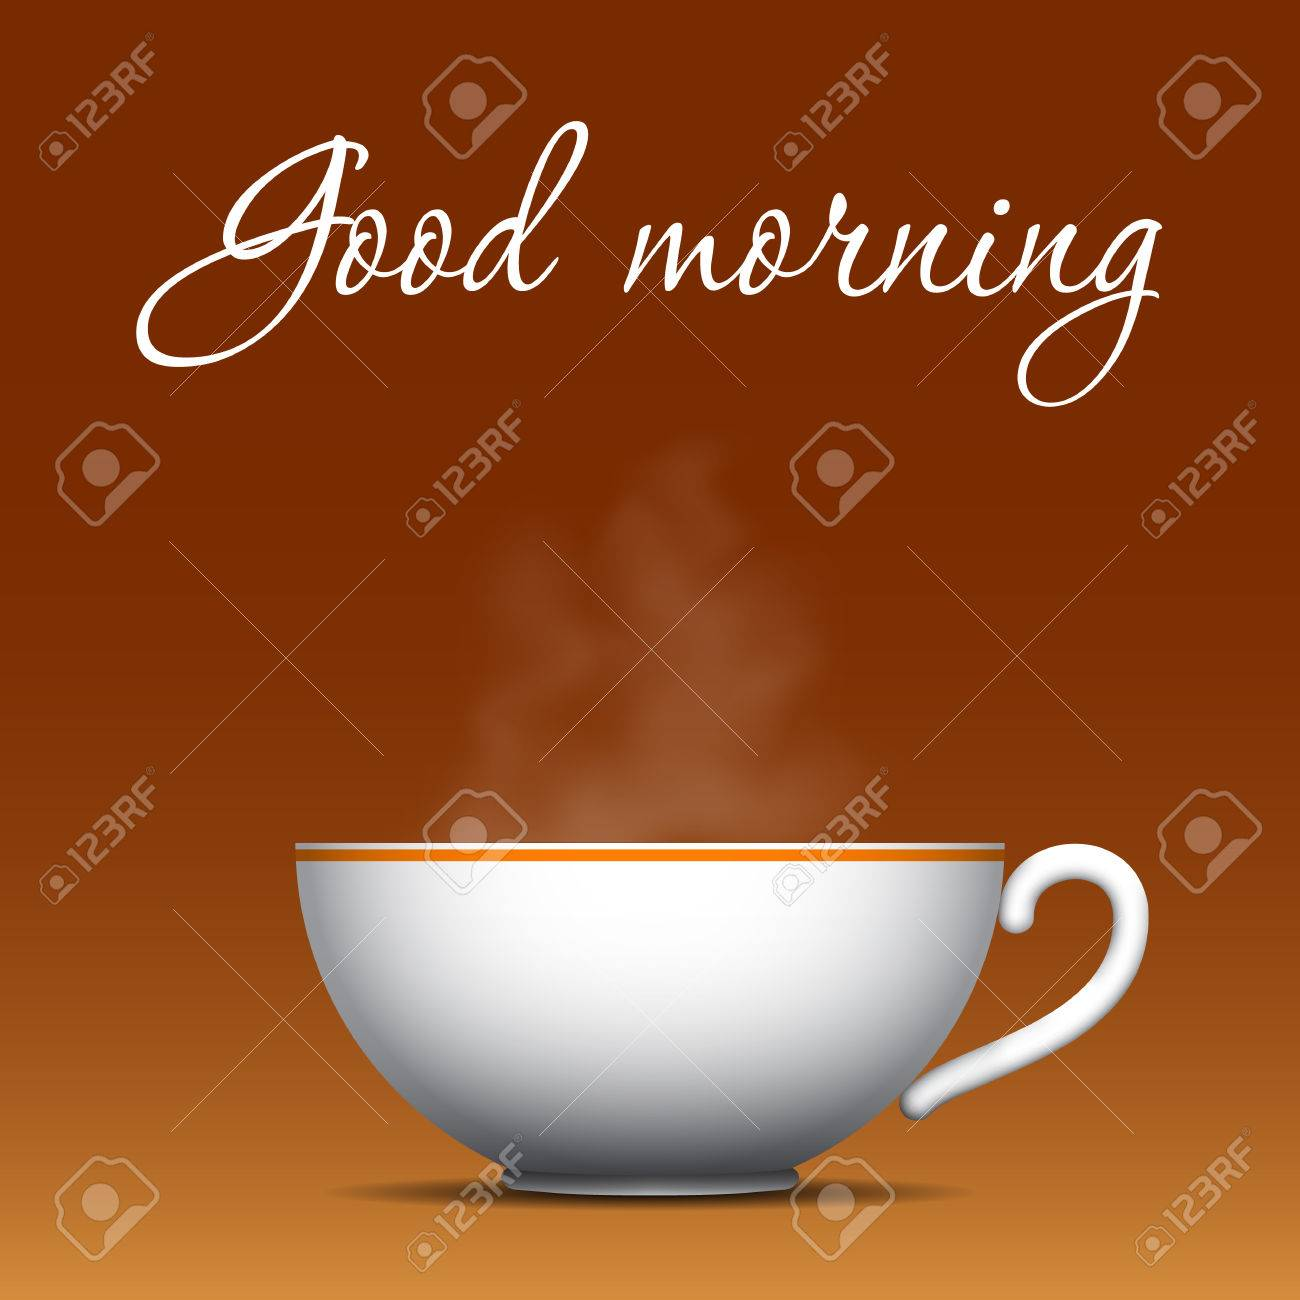 Good Morning Greeting Cup Of Coffee With A Steam Over It Vector